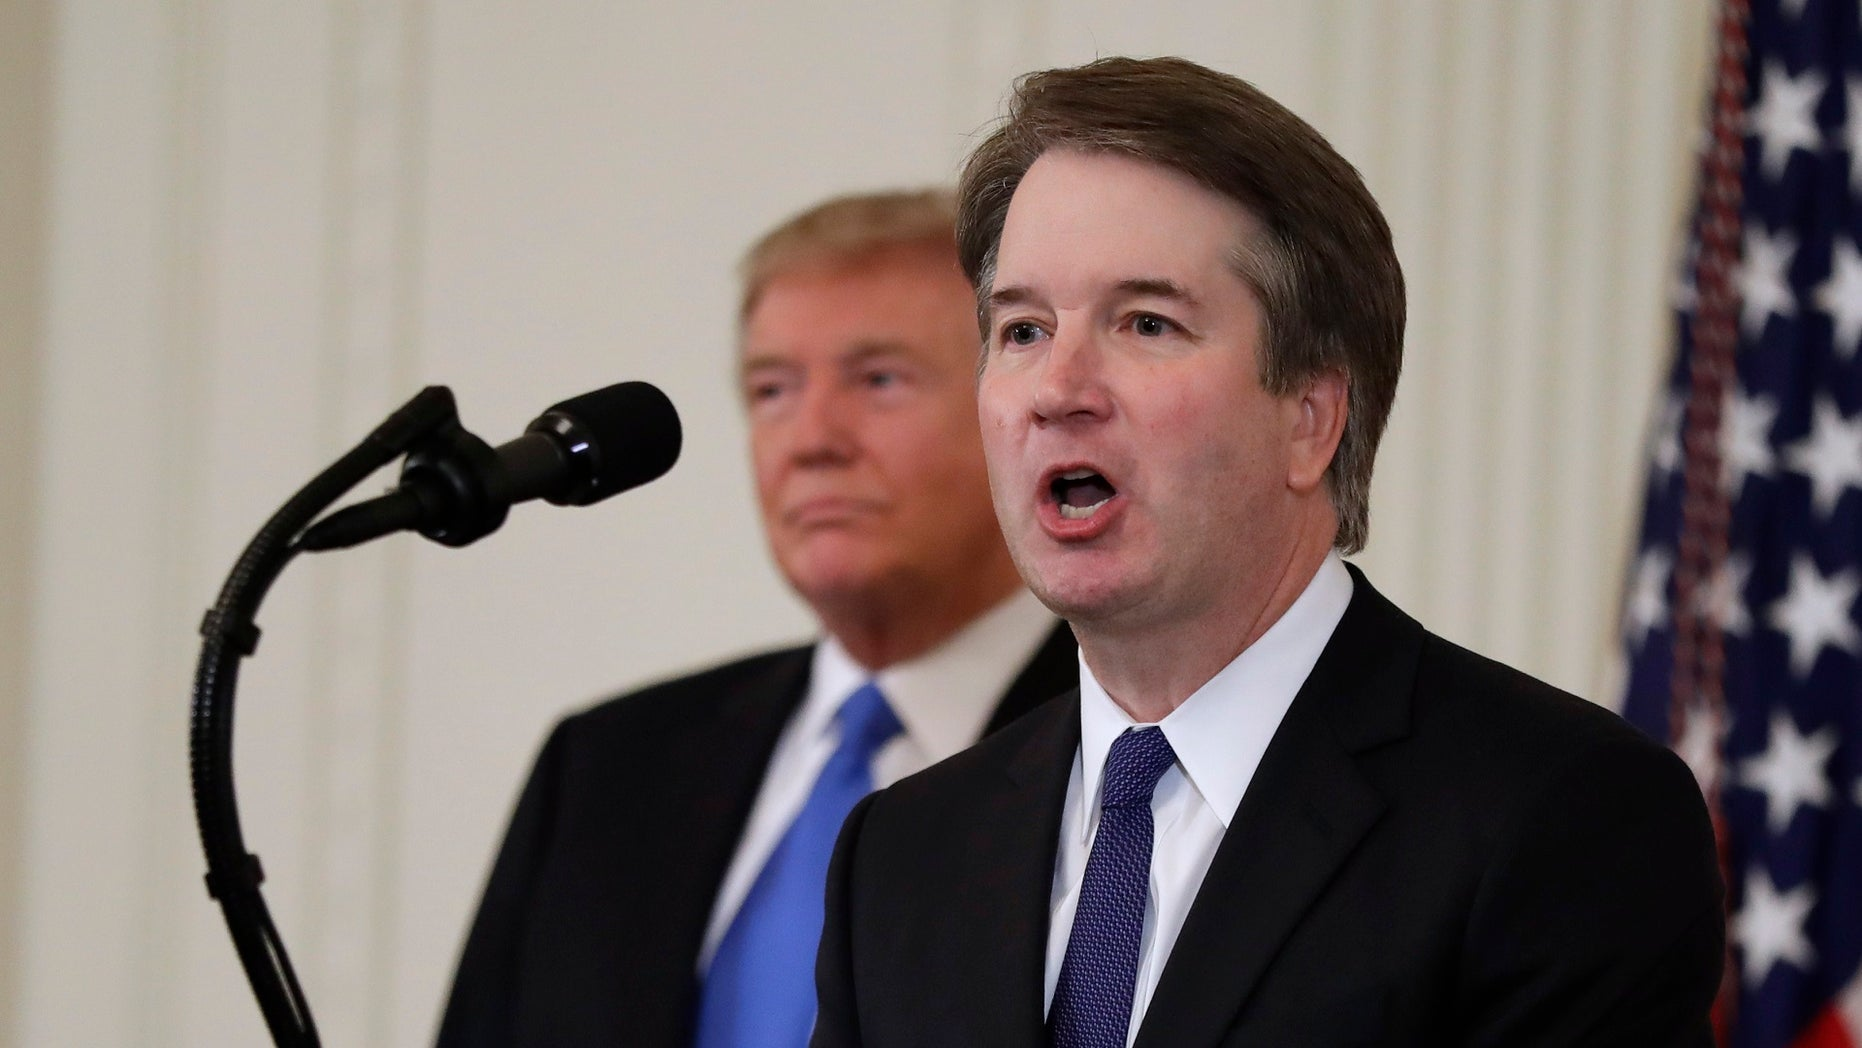 Supreme Court nominee Brett Kavanaugh paid off credit card debt that he accumulated on baseball tickets, according to the Washington Post.